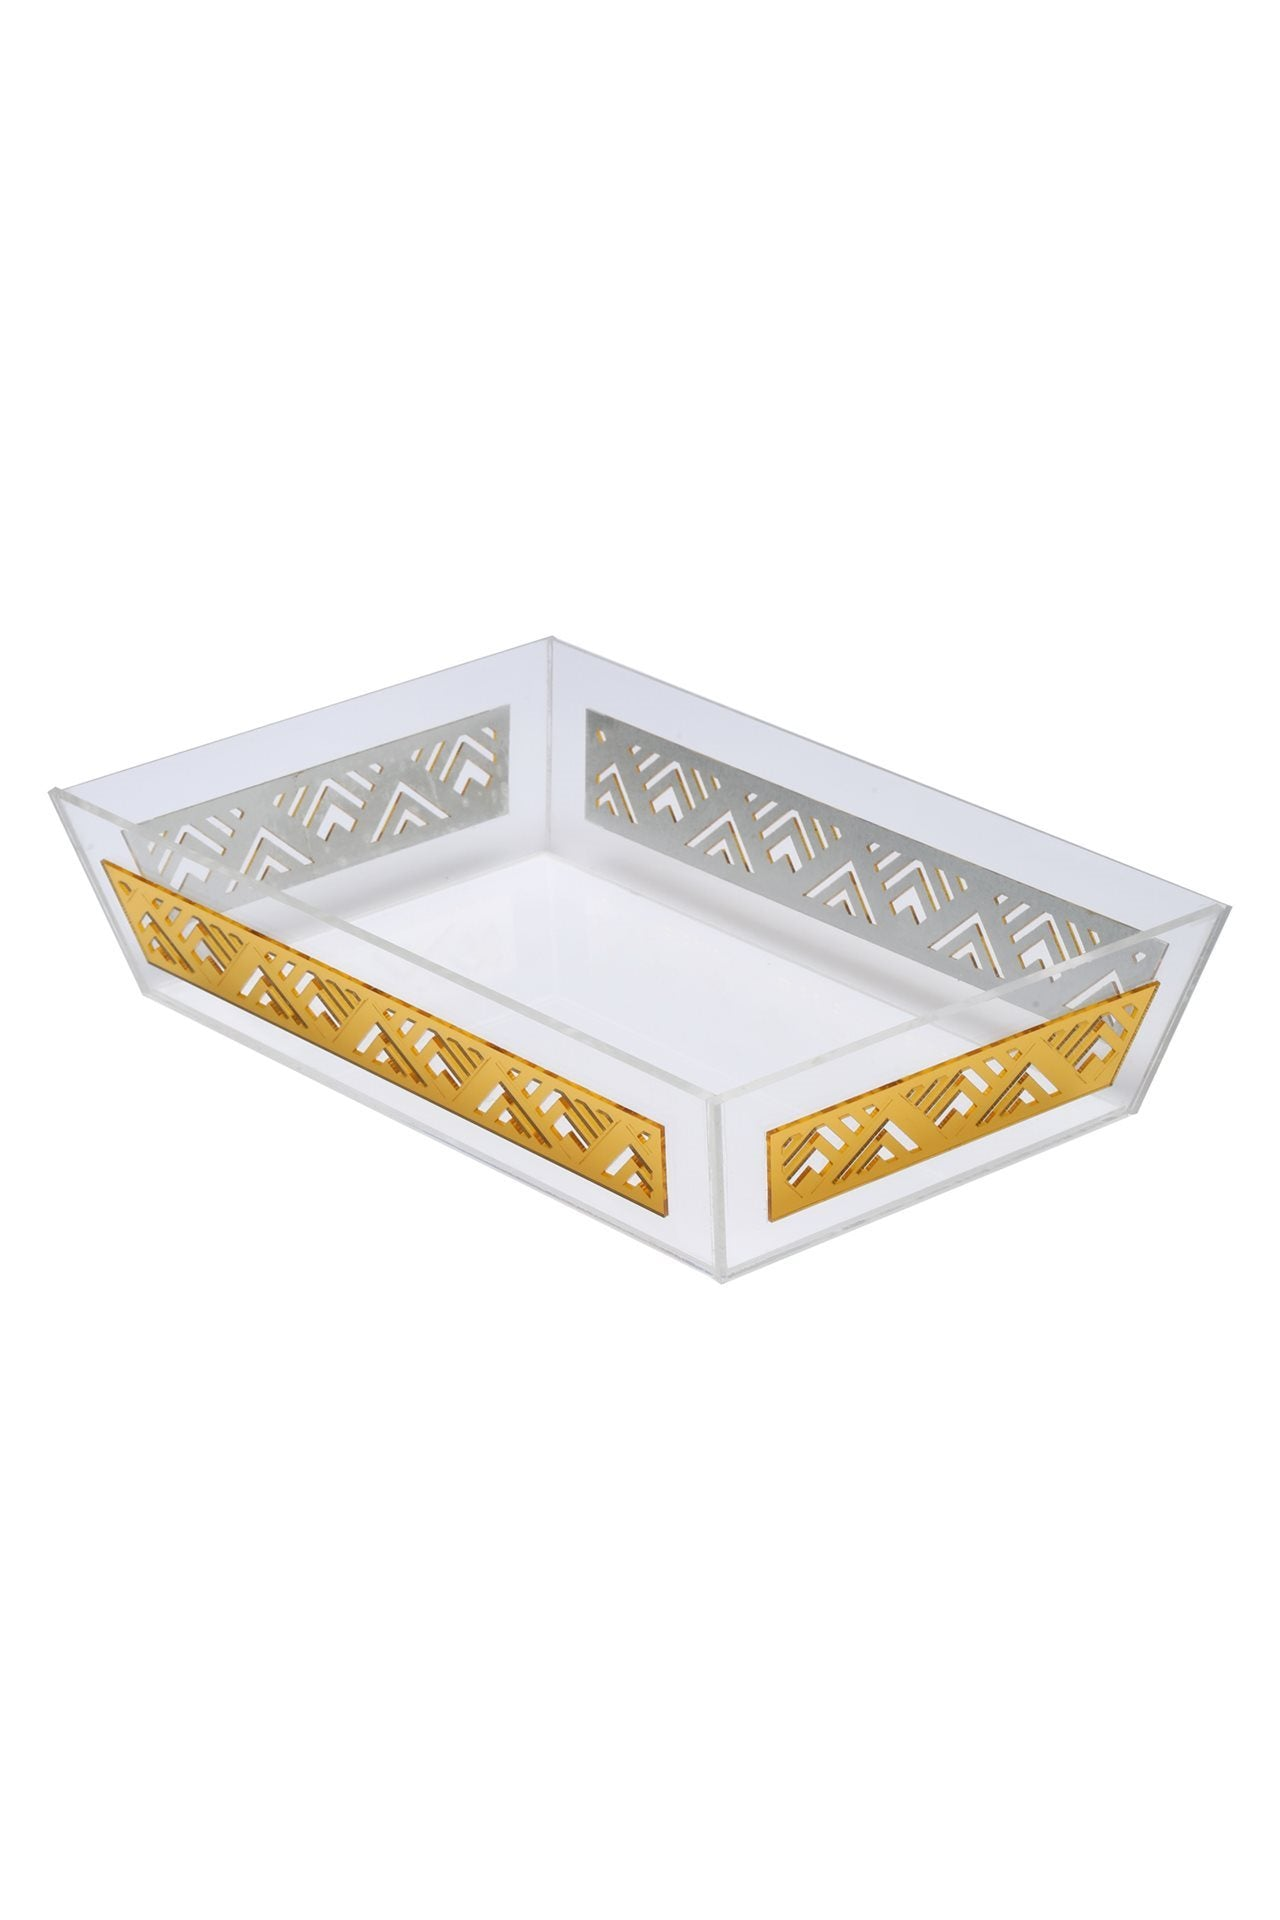 Geometric Rectangular Towel Tray